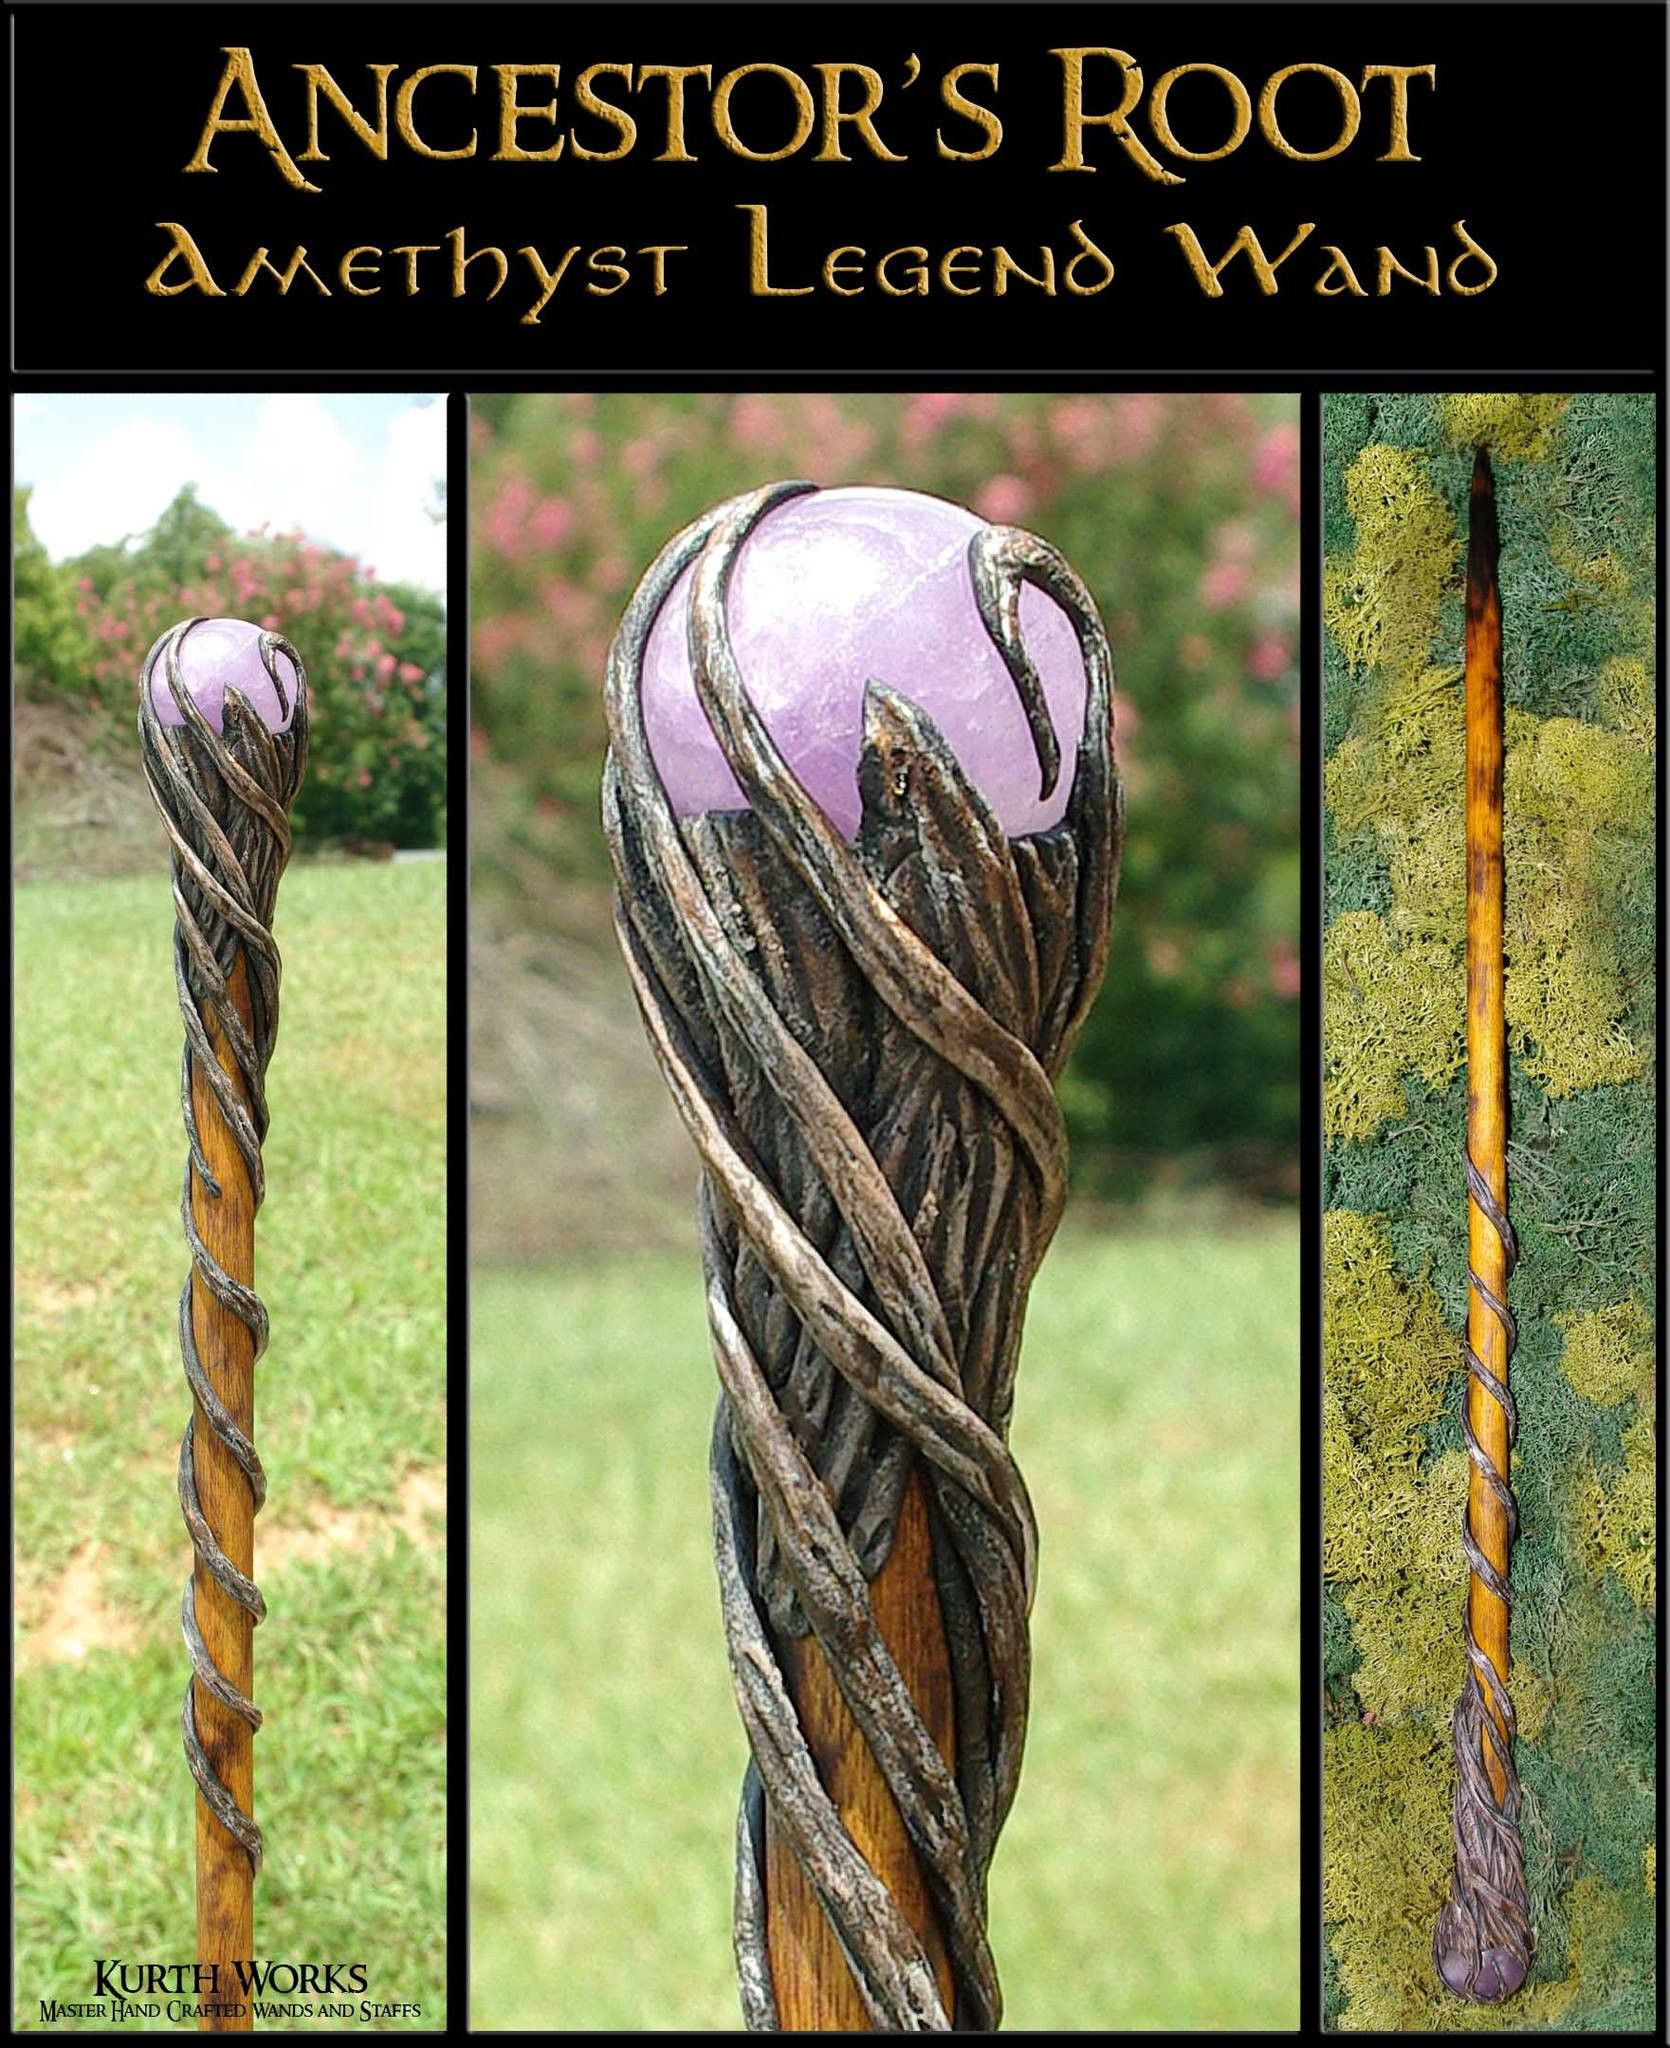 Wooden staff designs kurth works custom hand carved magic wizard wands - Ancestor S Root Amethyst Crystal Magic Wizard Wand